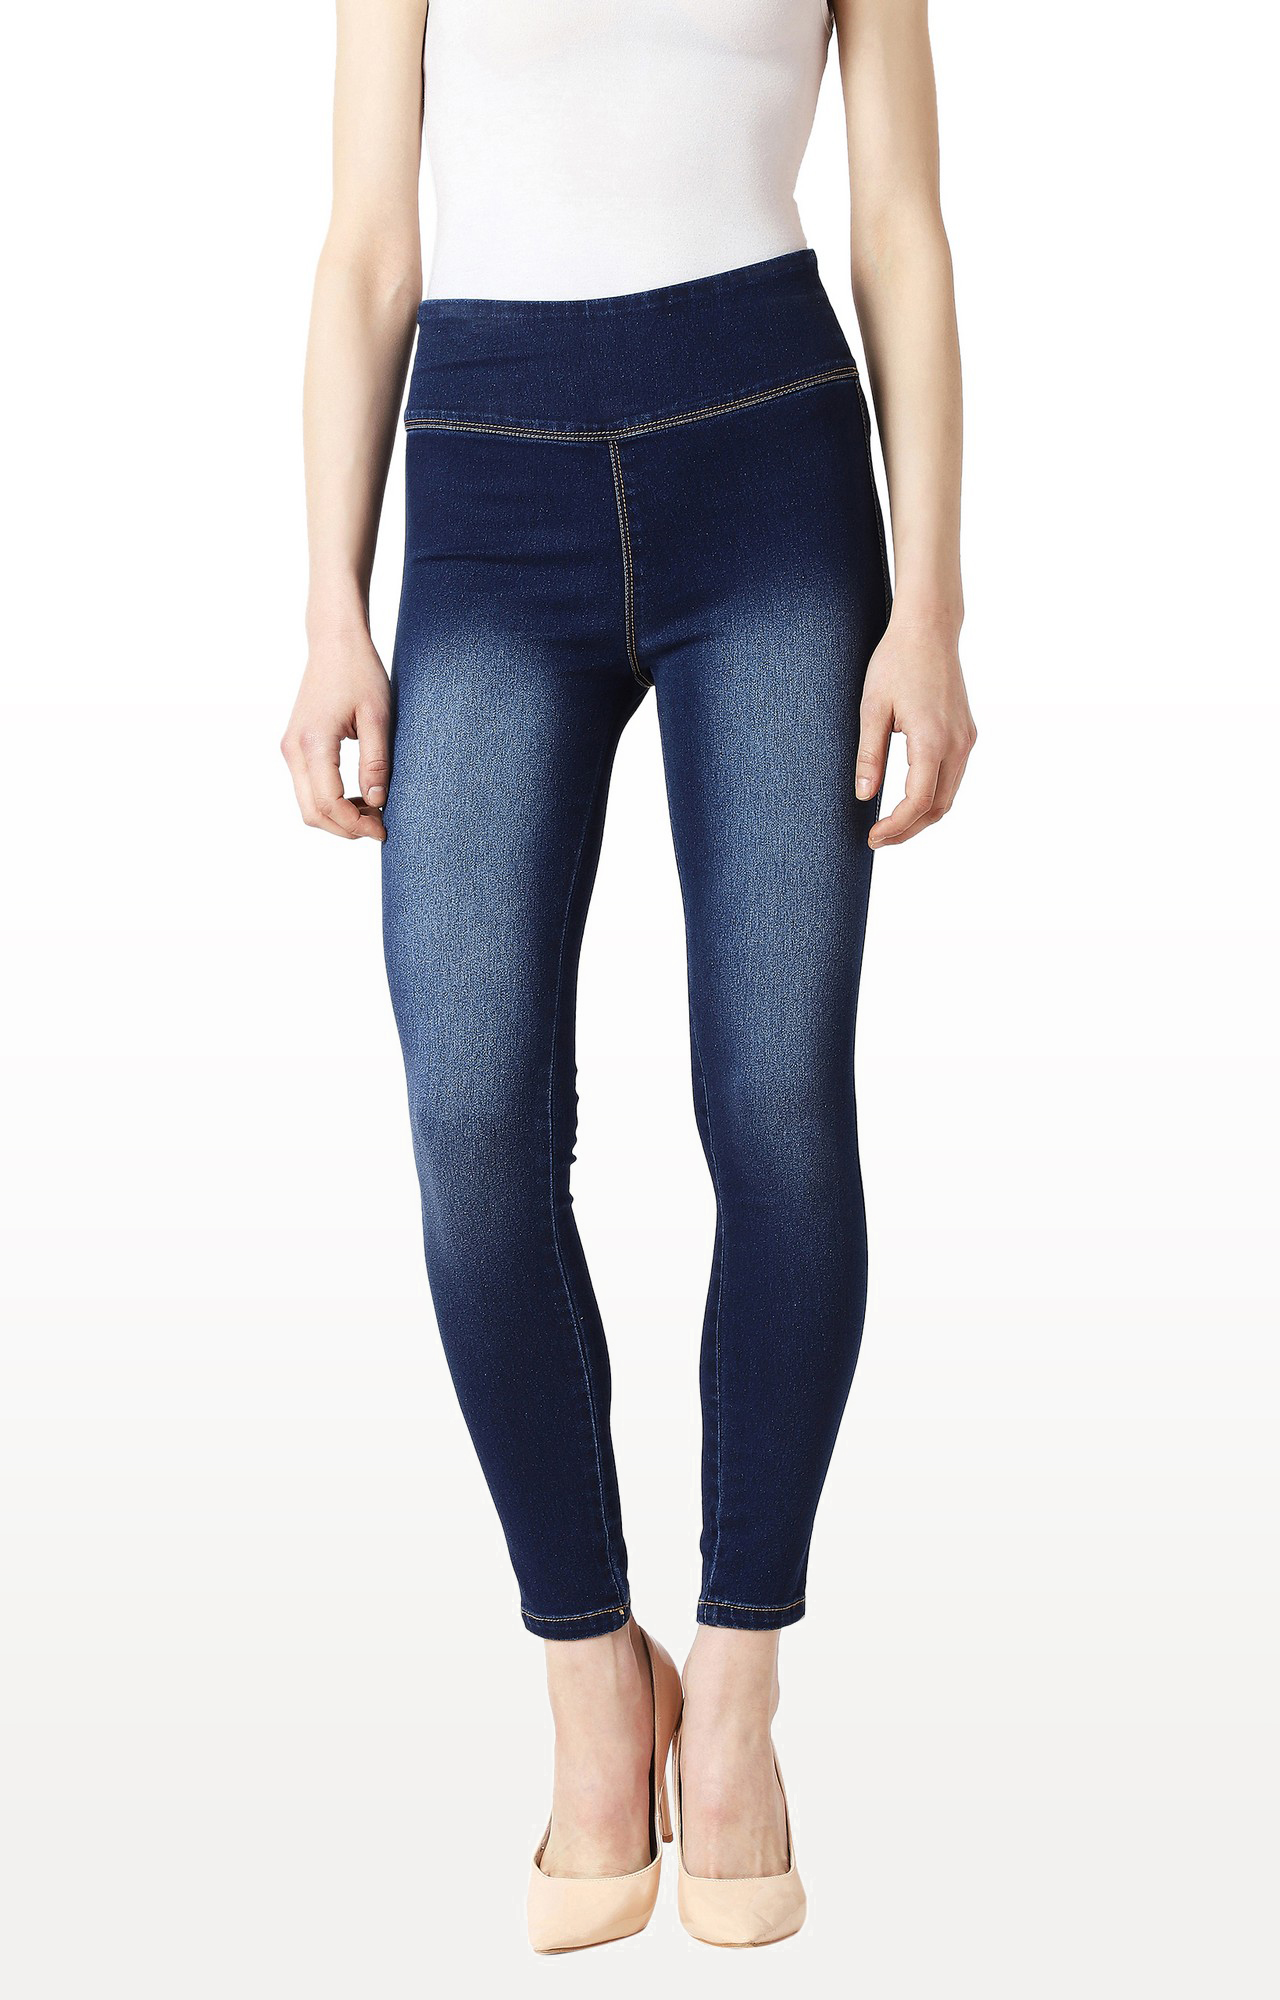 MISS CHASE | Navy Solid High Rise Clean Look Cropped Denim Jeggings